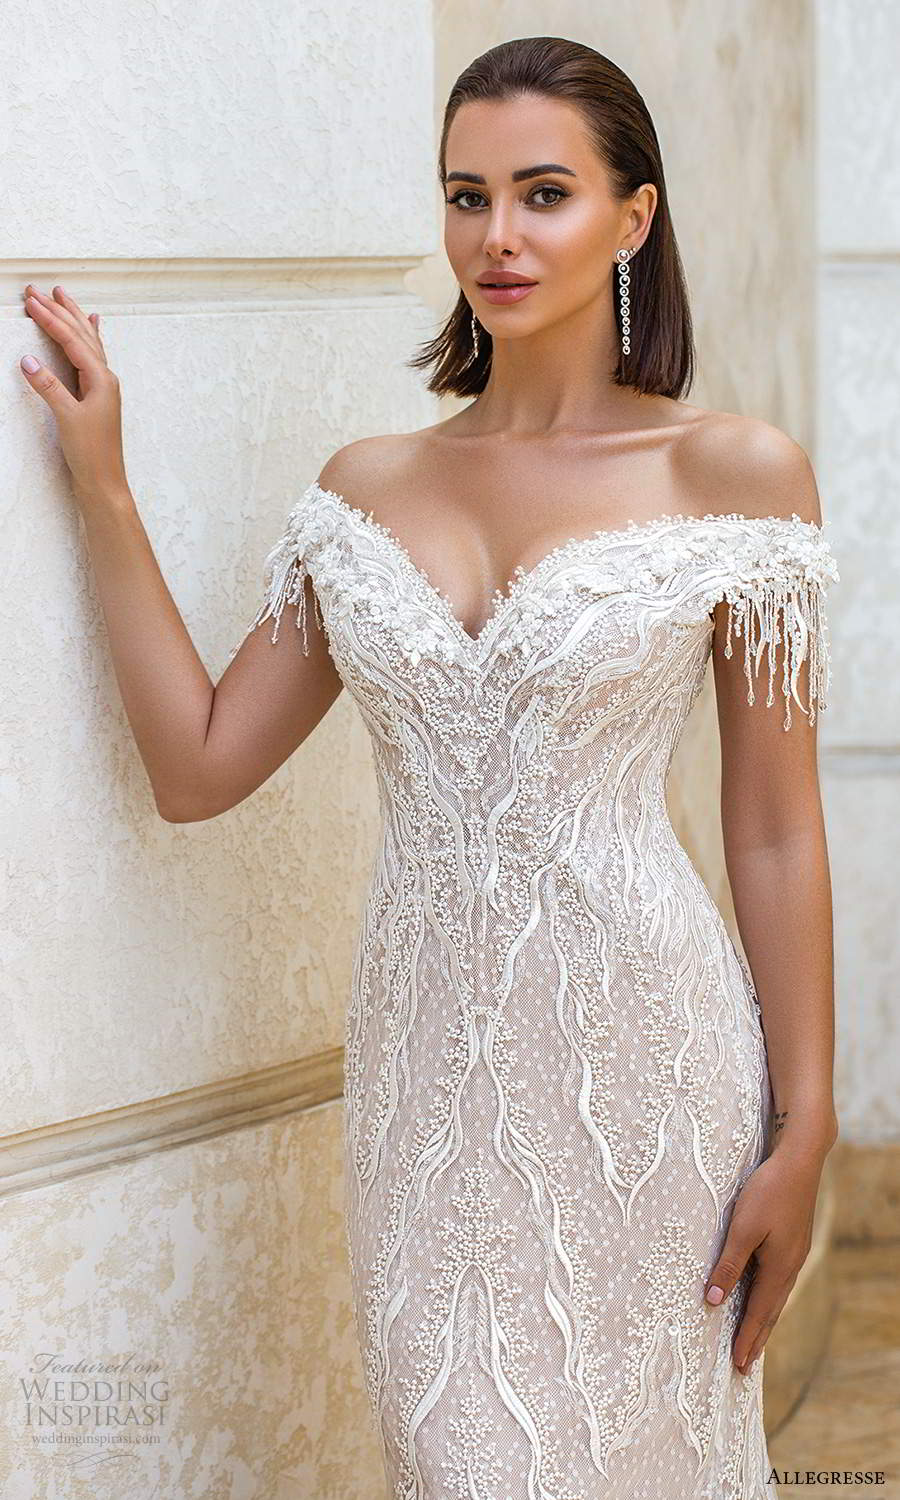 allegresse 2021 bridal off shoulder straps sweetheart neckline fully embellished fit flare sheath wedding dress chapel train blush (15) zv